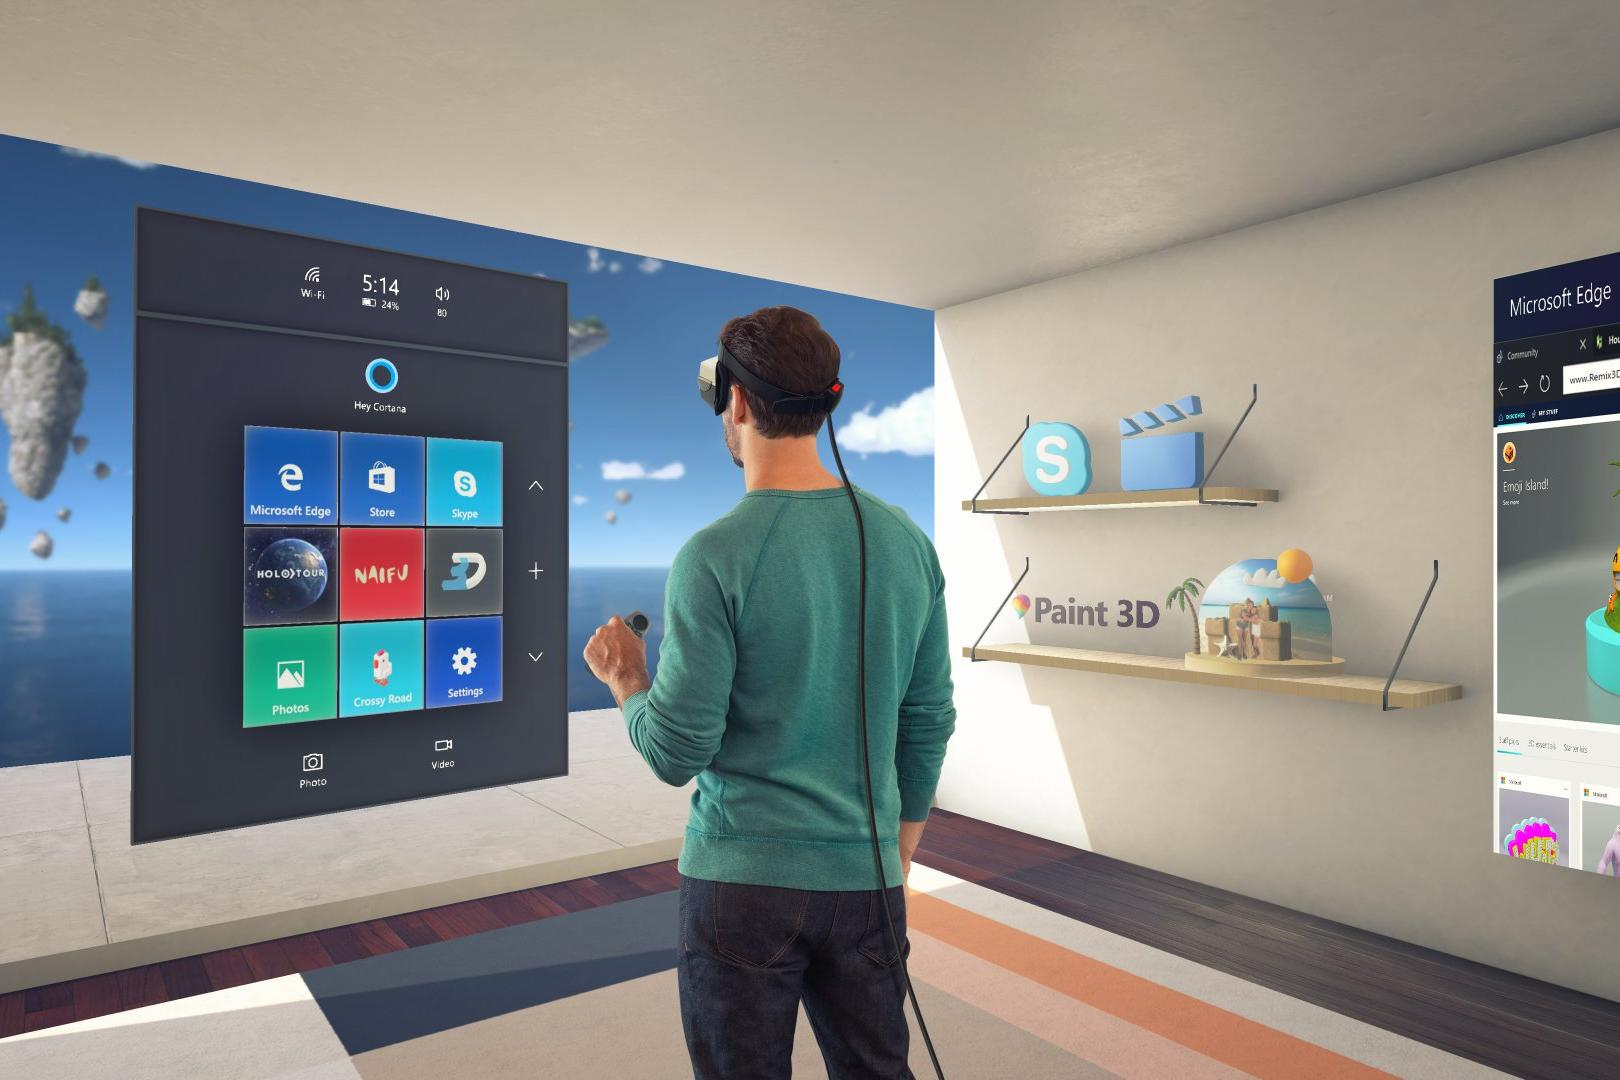 An In-depth Look at Microsoft's HoloLens & Mixed Reality